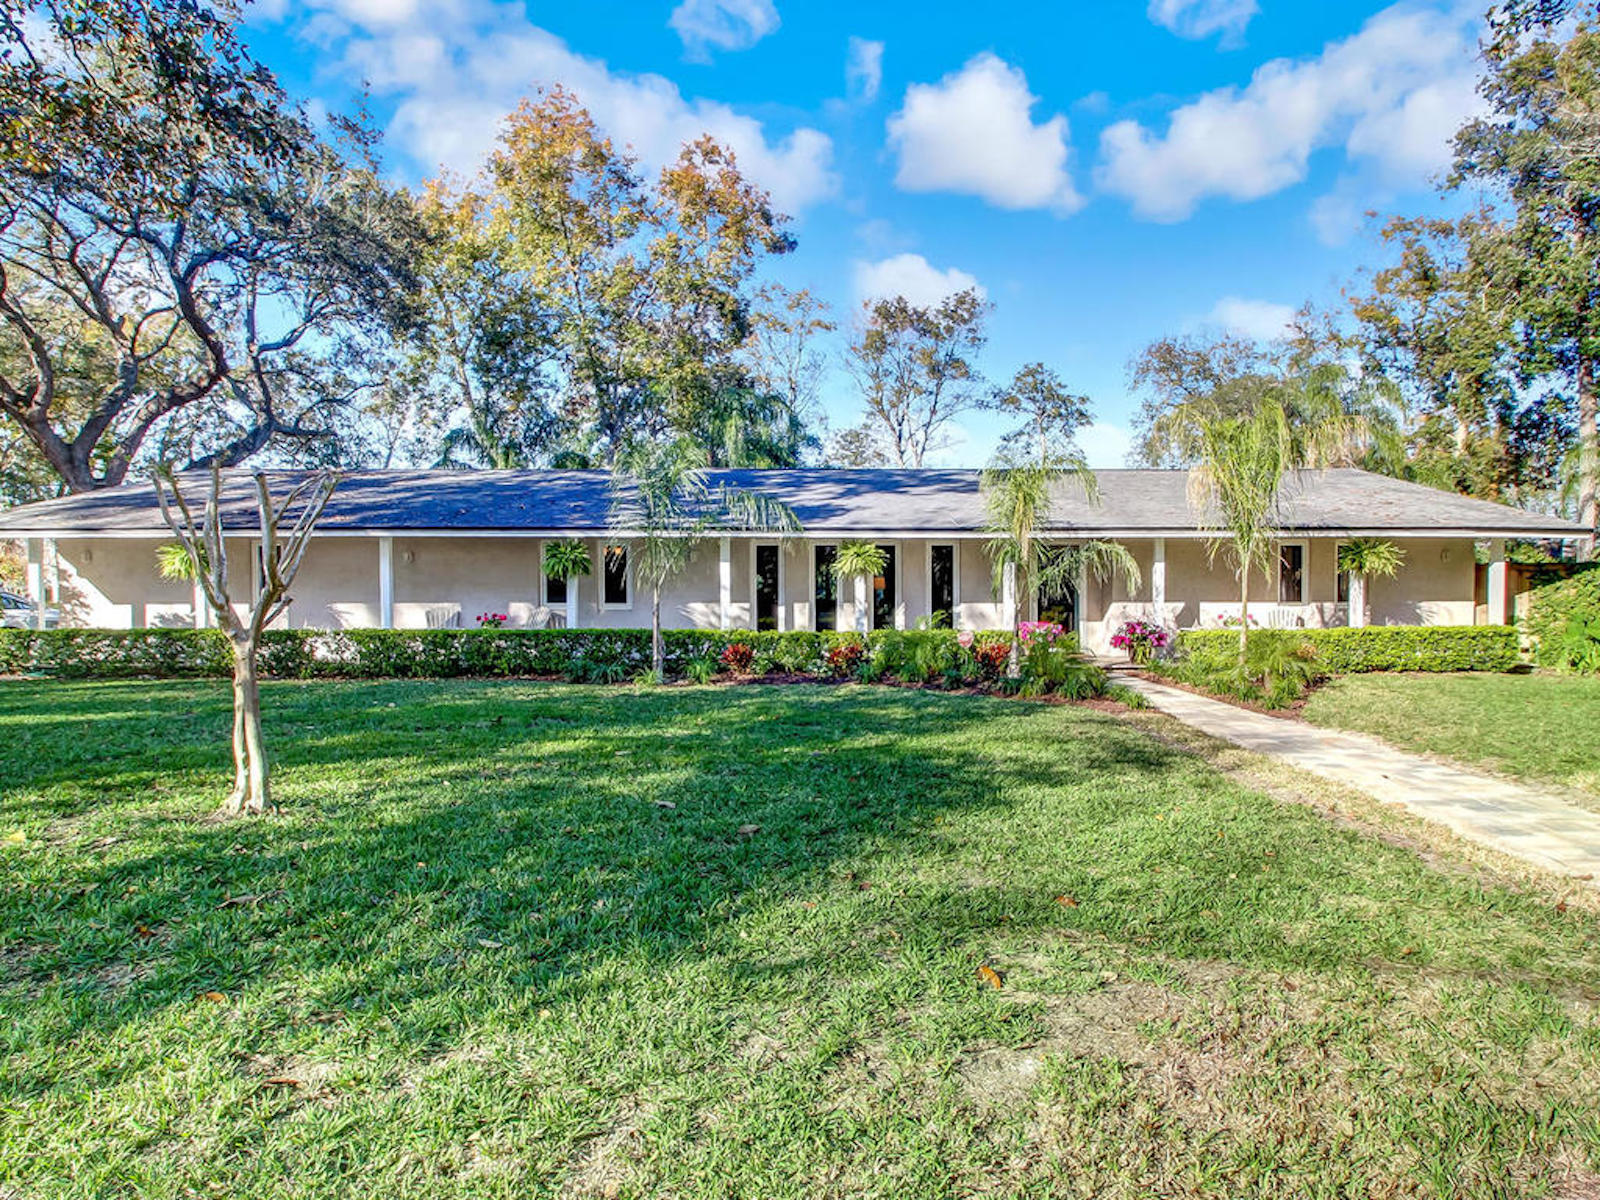 獨棟家庭住宅 為 出售 在 Beautifully Renovated Ranch 13913 Shipwreck Circle South Jacksonville, 佛羅里達州, 32224 美國